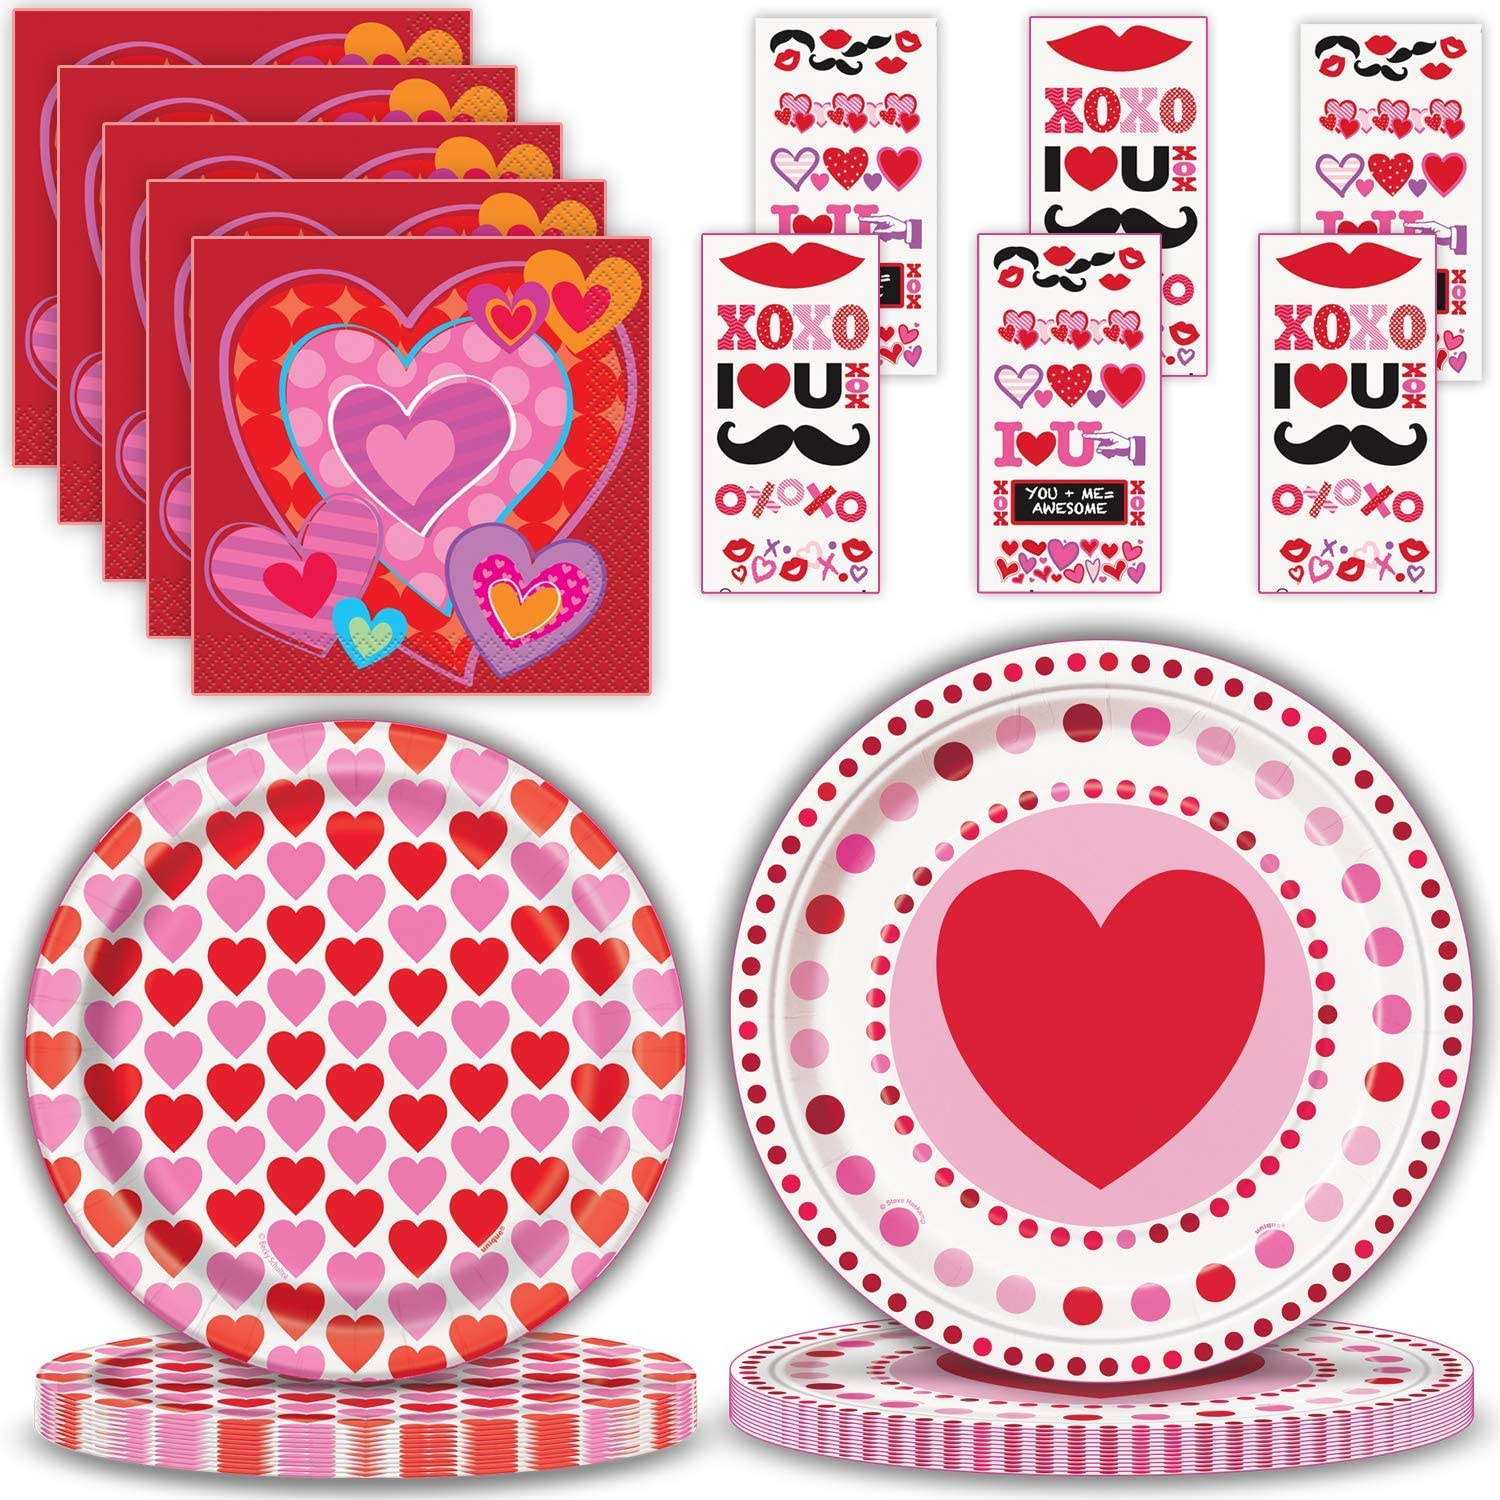 Valentine's 信用 Day Party Supplies for 24 日本未発売 P Paper Large Disposable -